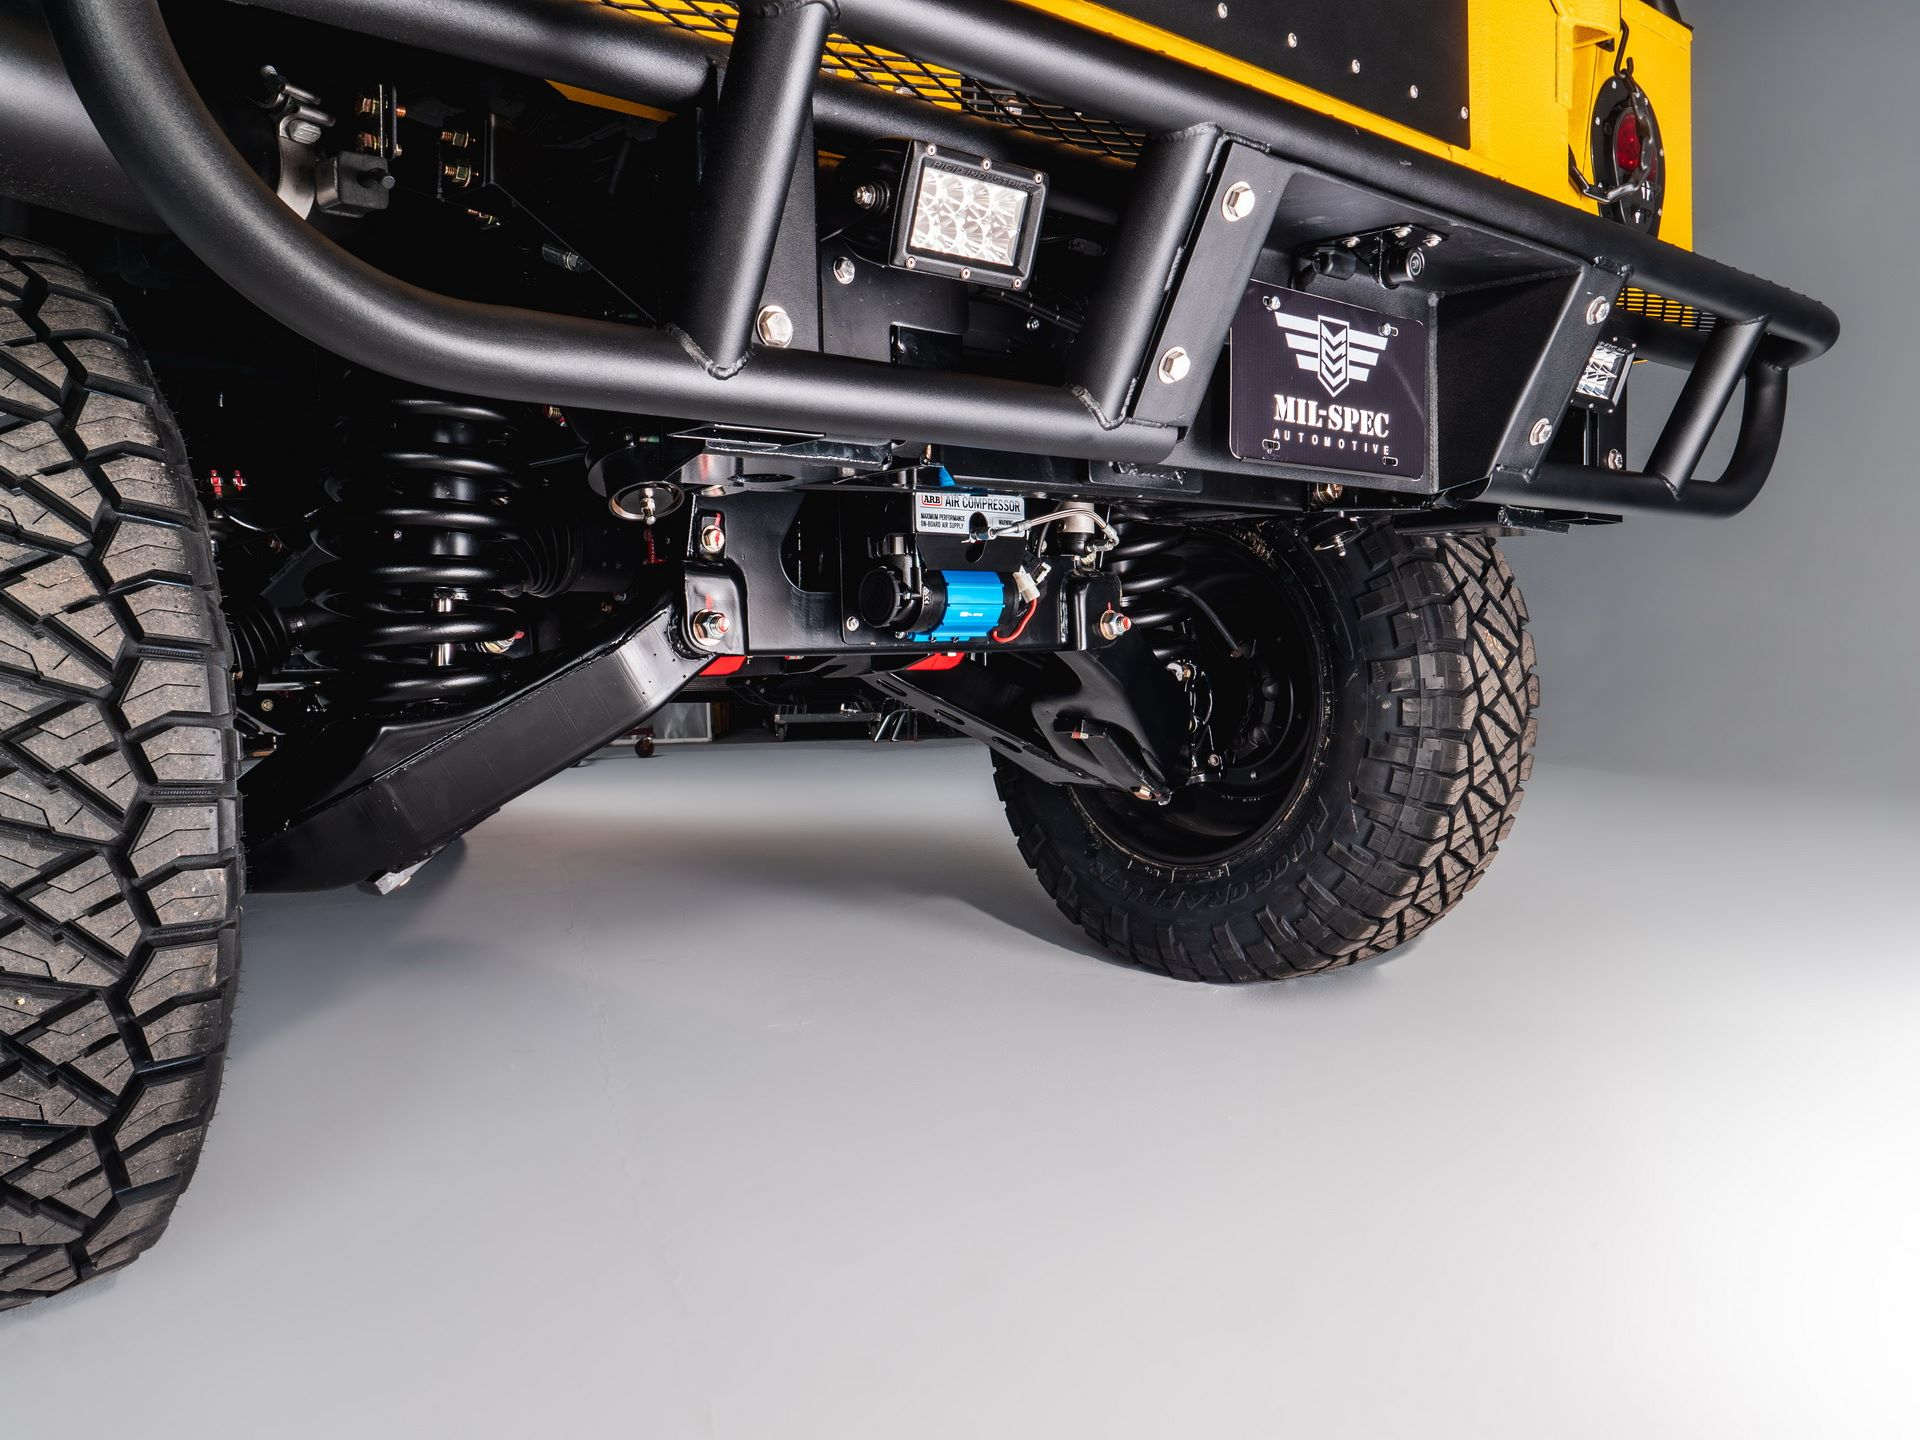 Hummer-M1-R-by-Mil-Spec-10